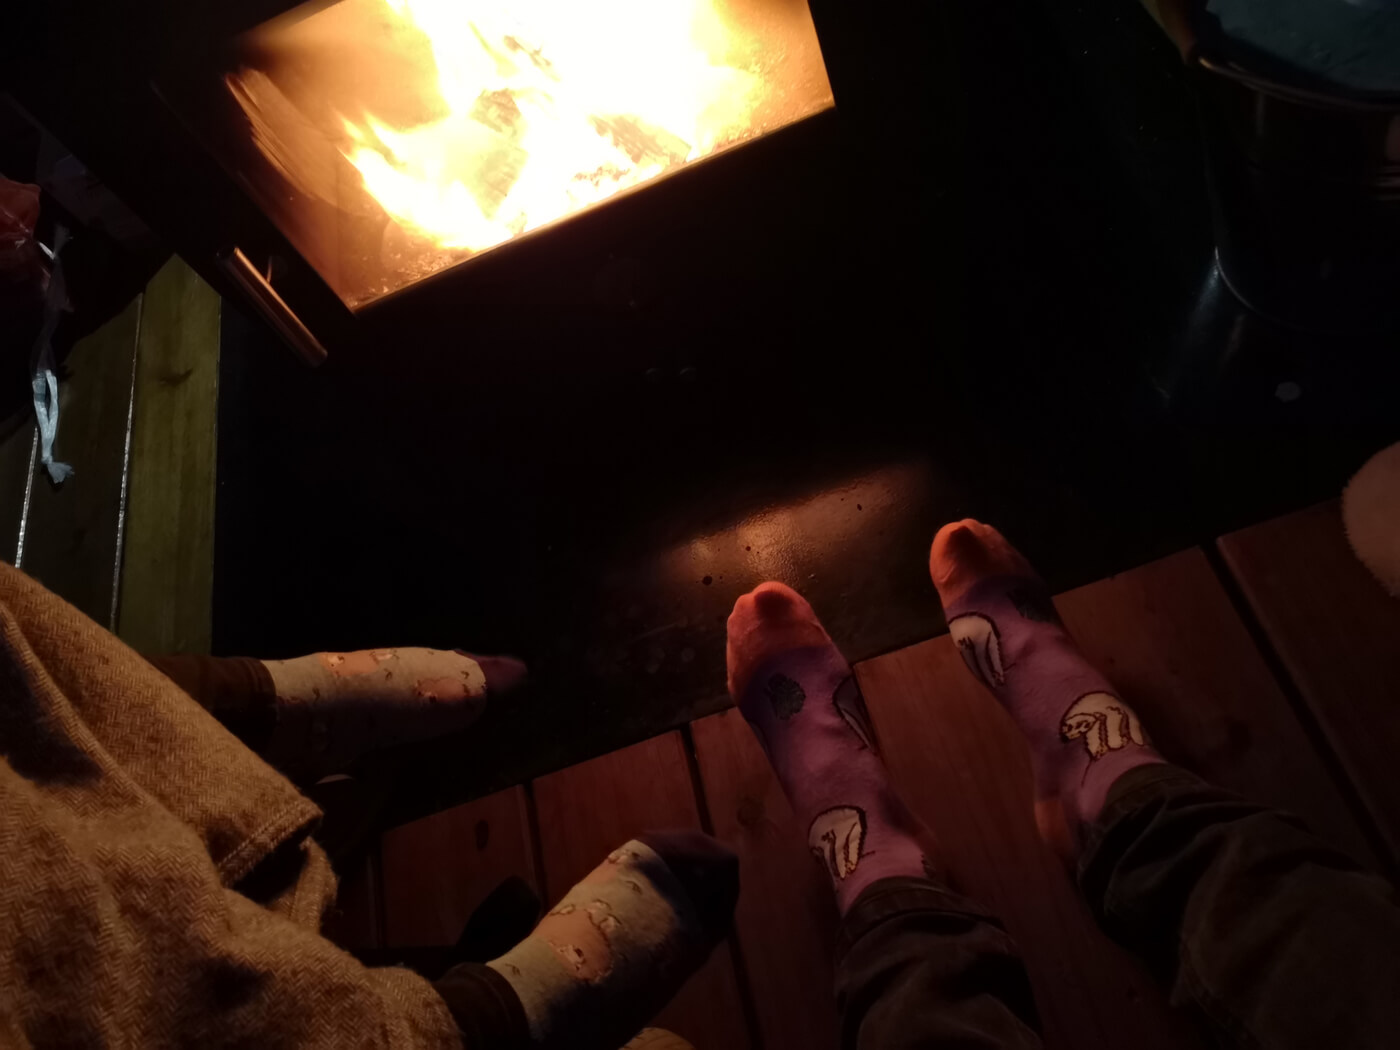 Emma and Allans feet next to the log fire.